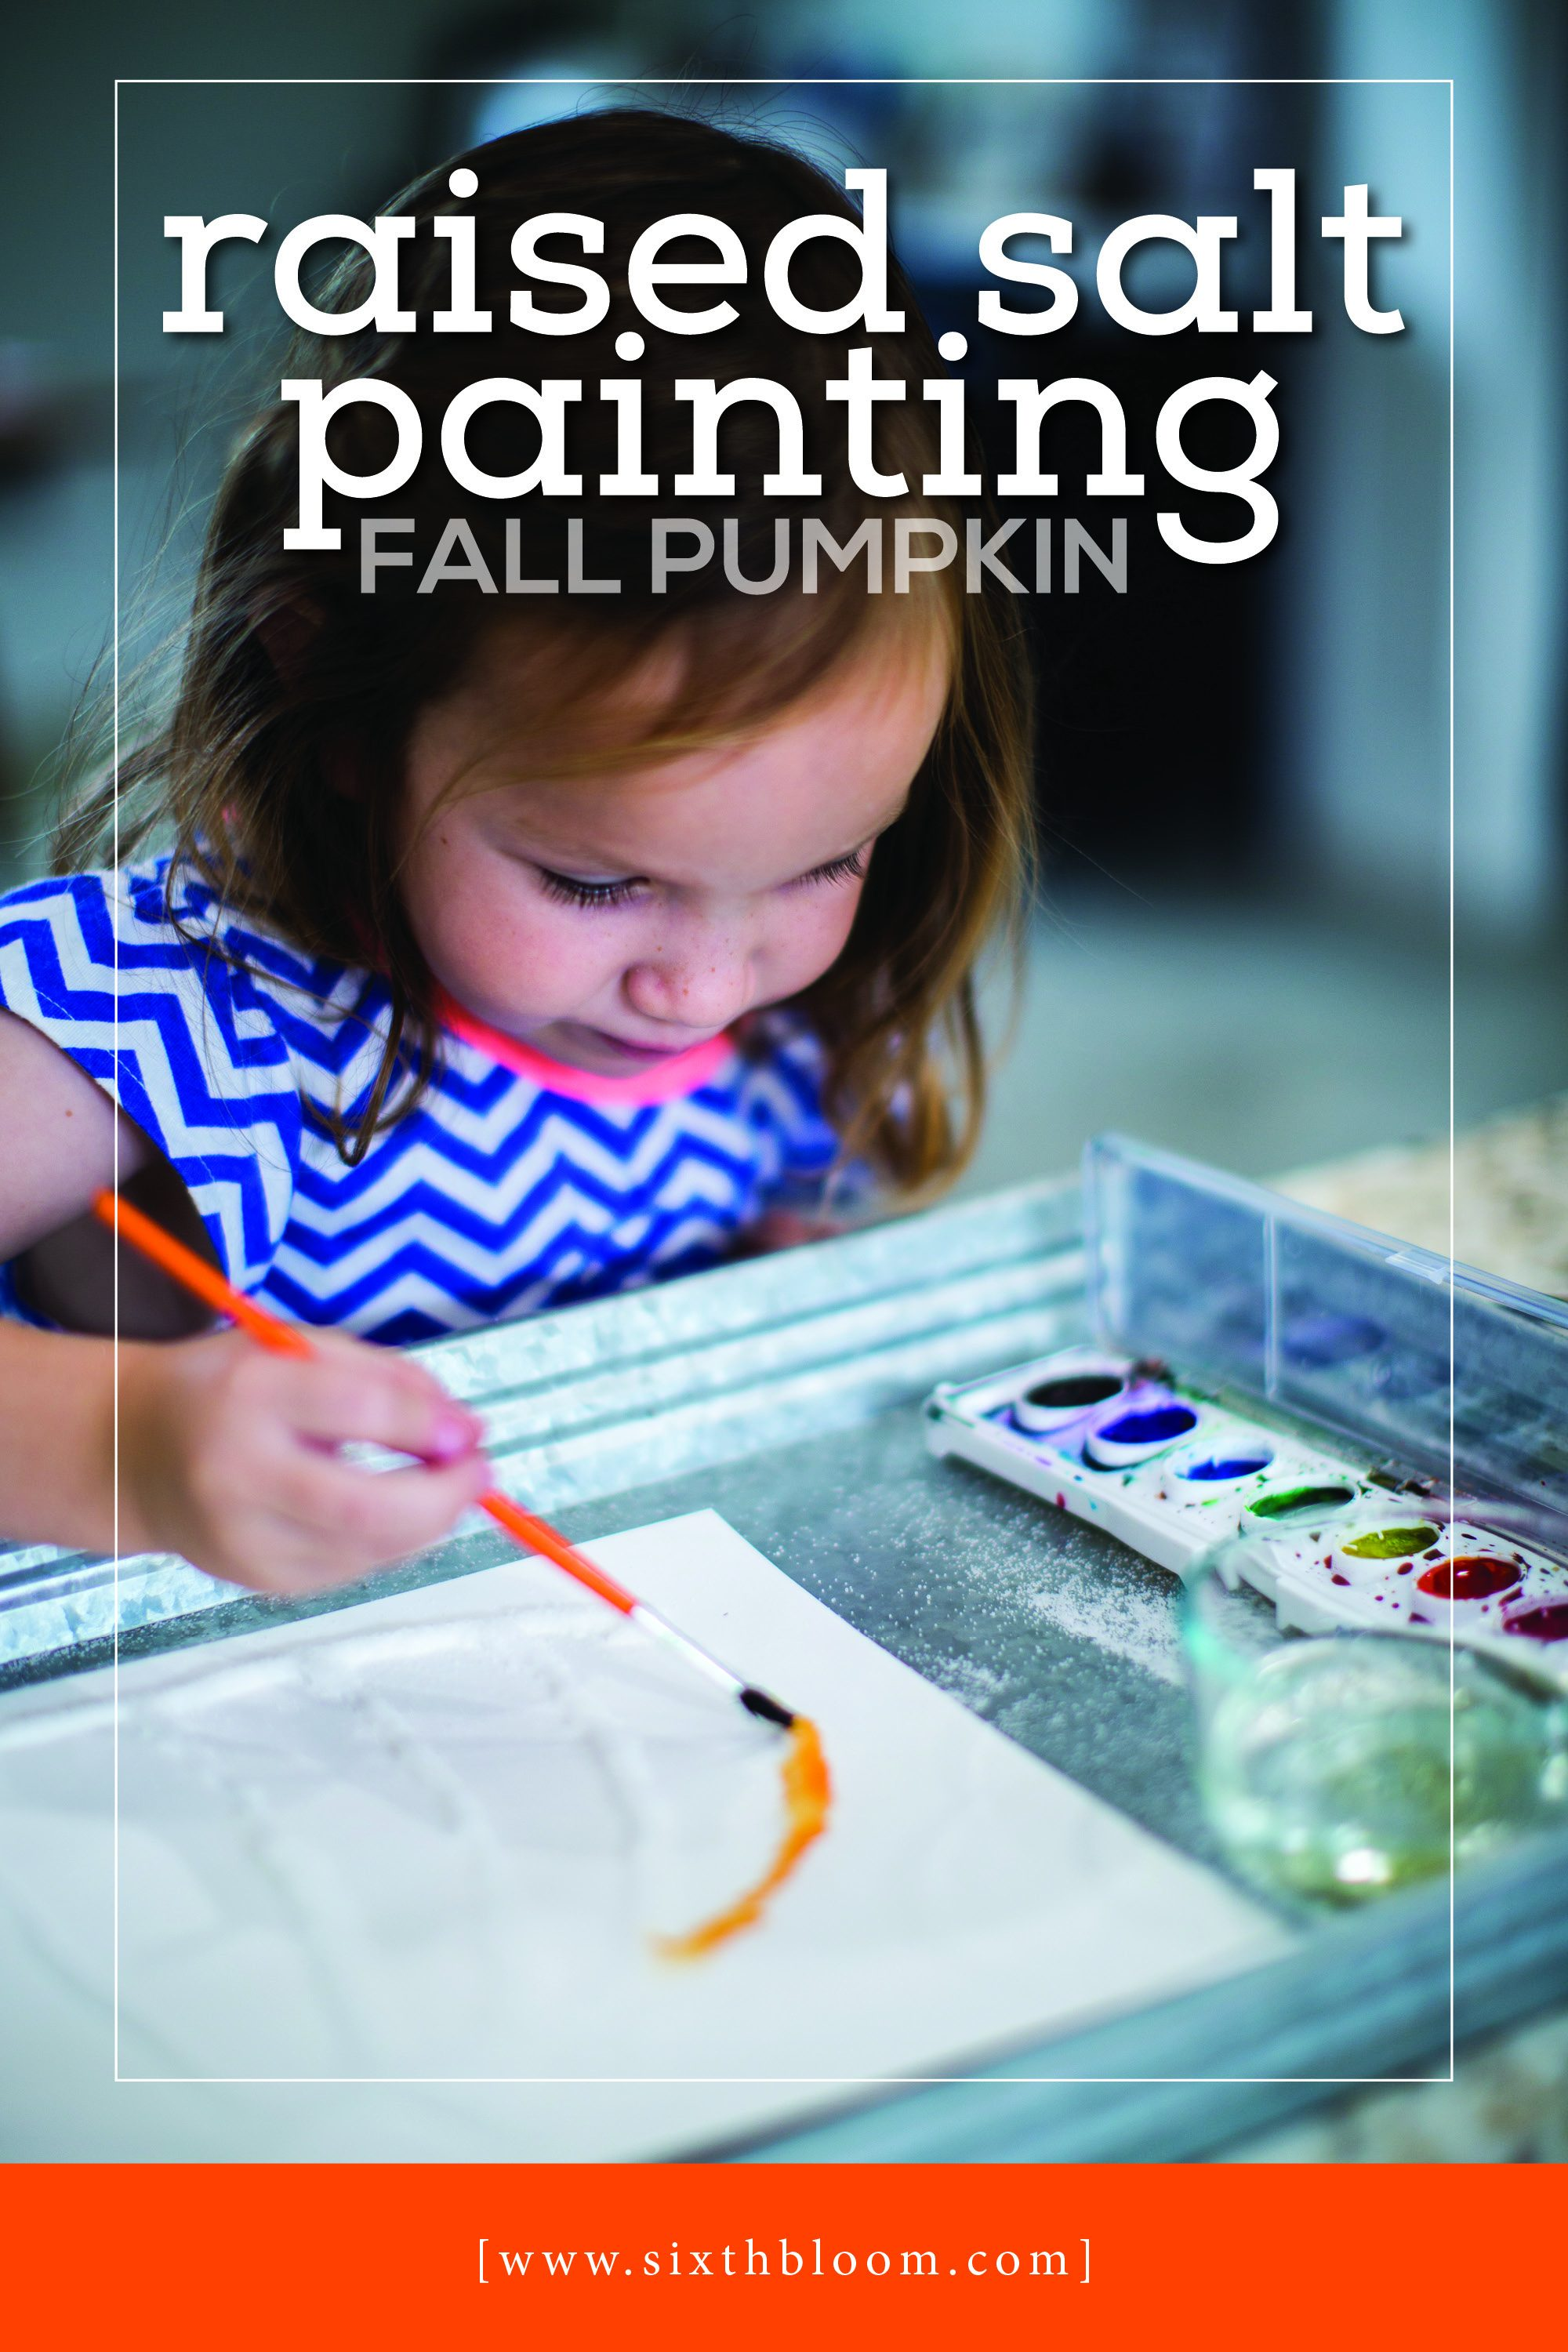 preschooler painting a salt pumpkin for art lessons